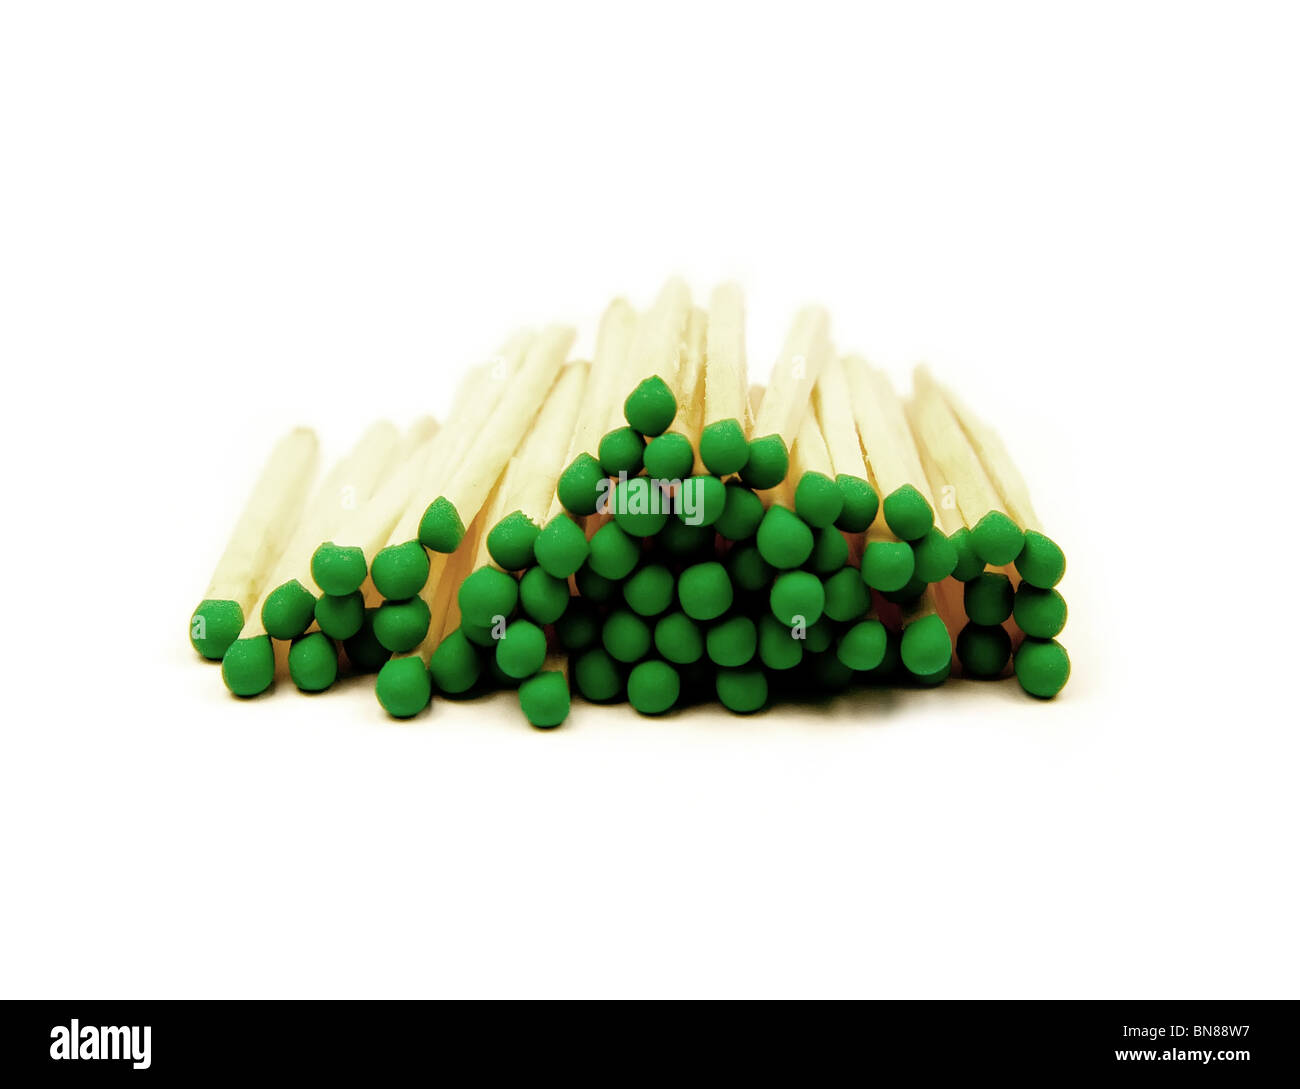 Close up photo of matches isolated on white - Stock Image